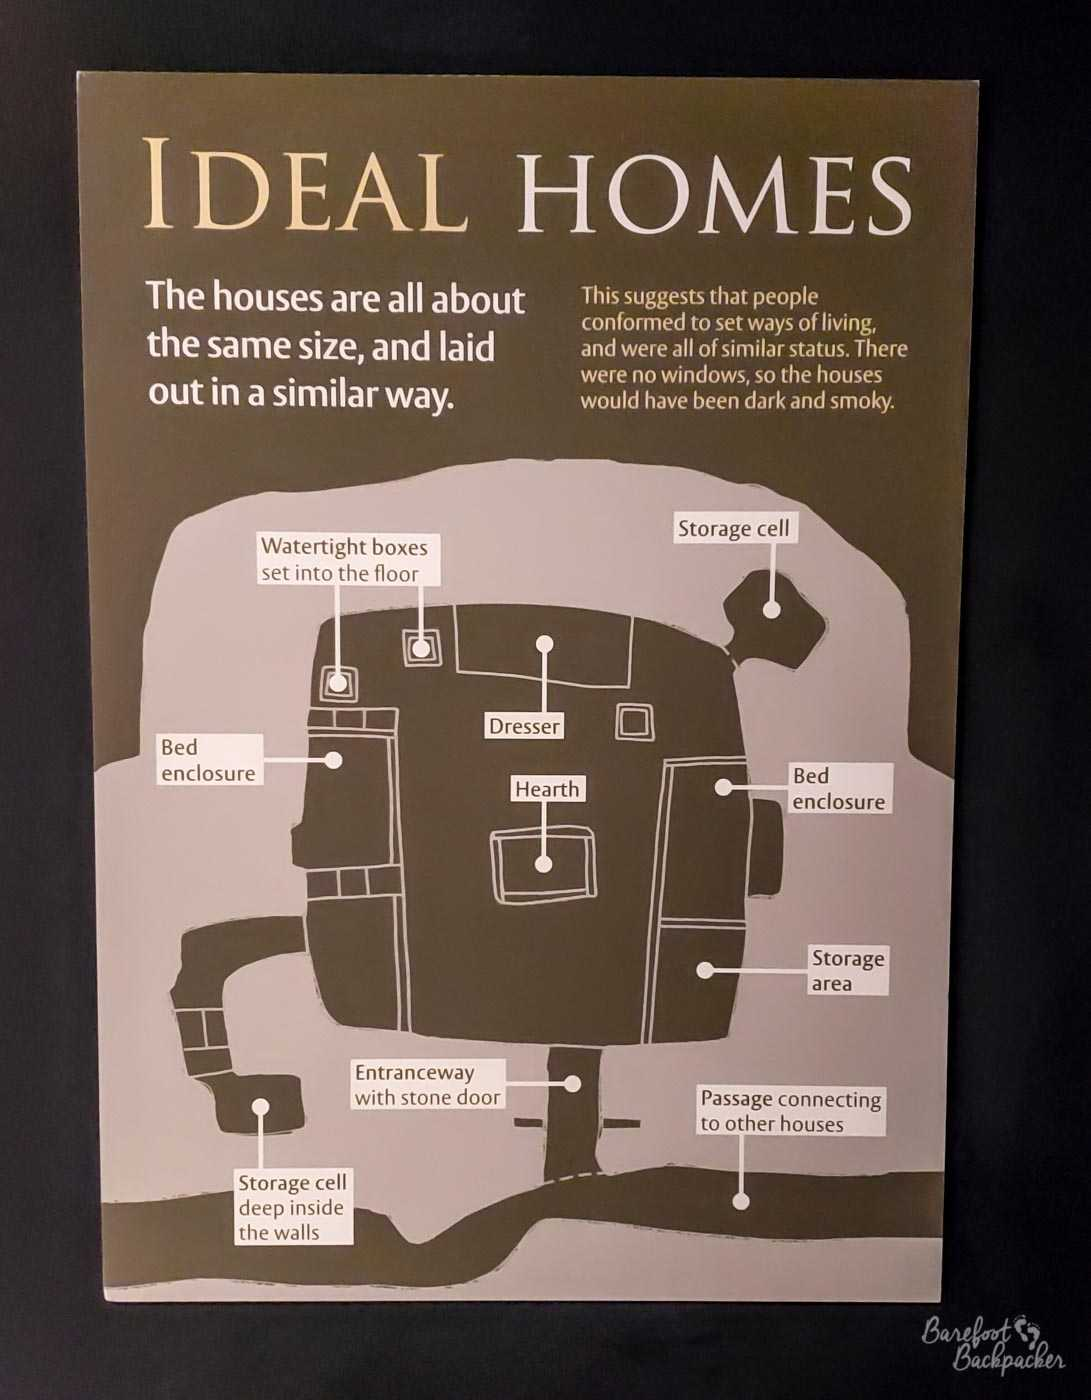 A floor plan of the standard rooms, as seen on an info board in the museum. It tells you the houses were all built to the same size and laid out in the same way. It also says that this suggests that people were all of a similar status and conformed to the same way of living. The final observation is the houses had no windows and therefore would have been quite smokey and dark. The layout of the houses are a central room with a hearth, two 'bedrooms' on either side, and a couple of storage cells, one set a short way deep into the wall. There would also have been a couple of watertight boxes set into the floor.